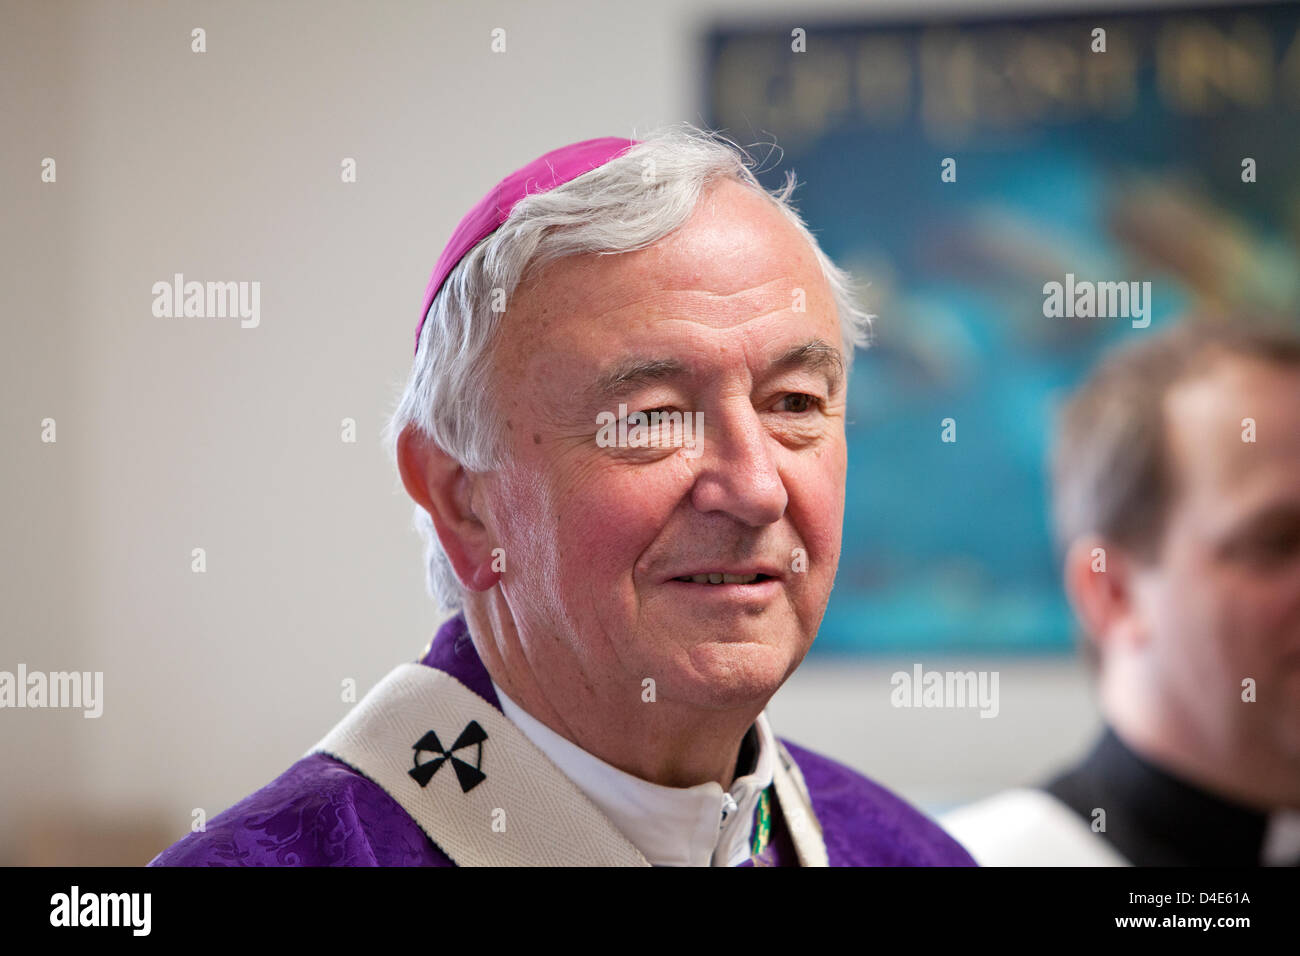 London, UK. March 12, 2013. Archbishop Vincent Nichols, the head of the Roman Catholic Church in England and Wales, - Stock Image